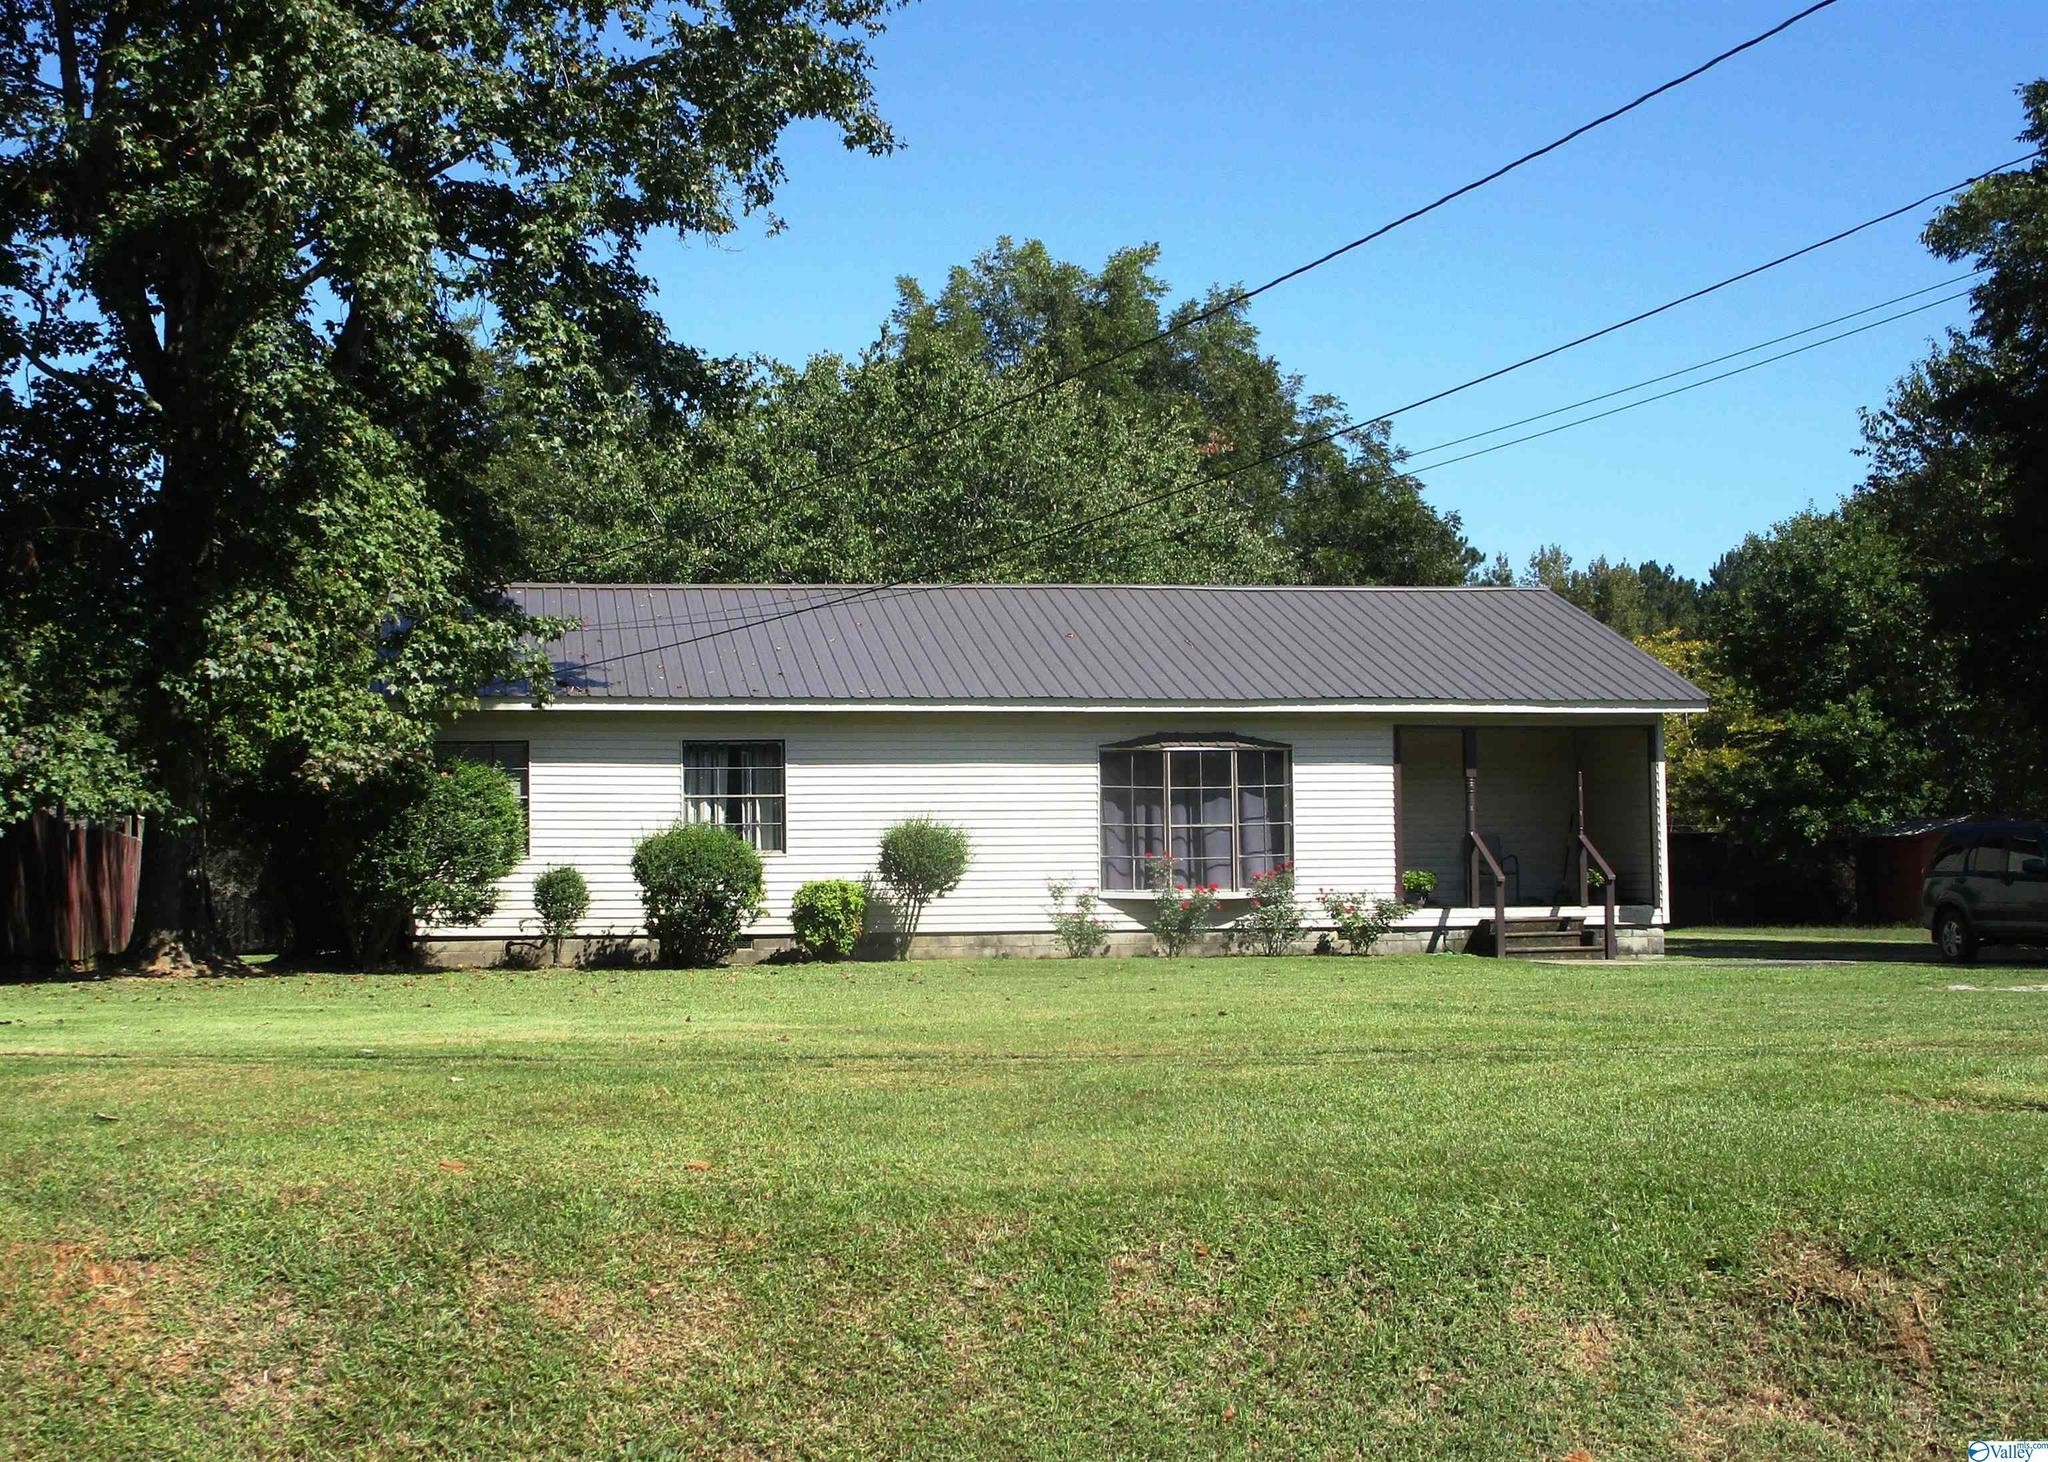 Mobile Home In Norris Hills